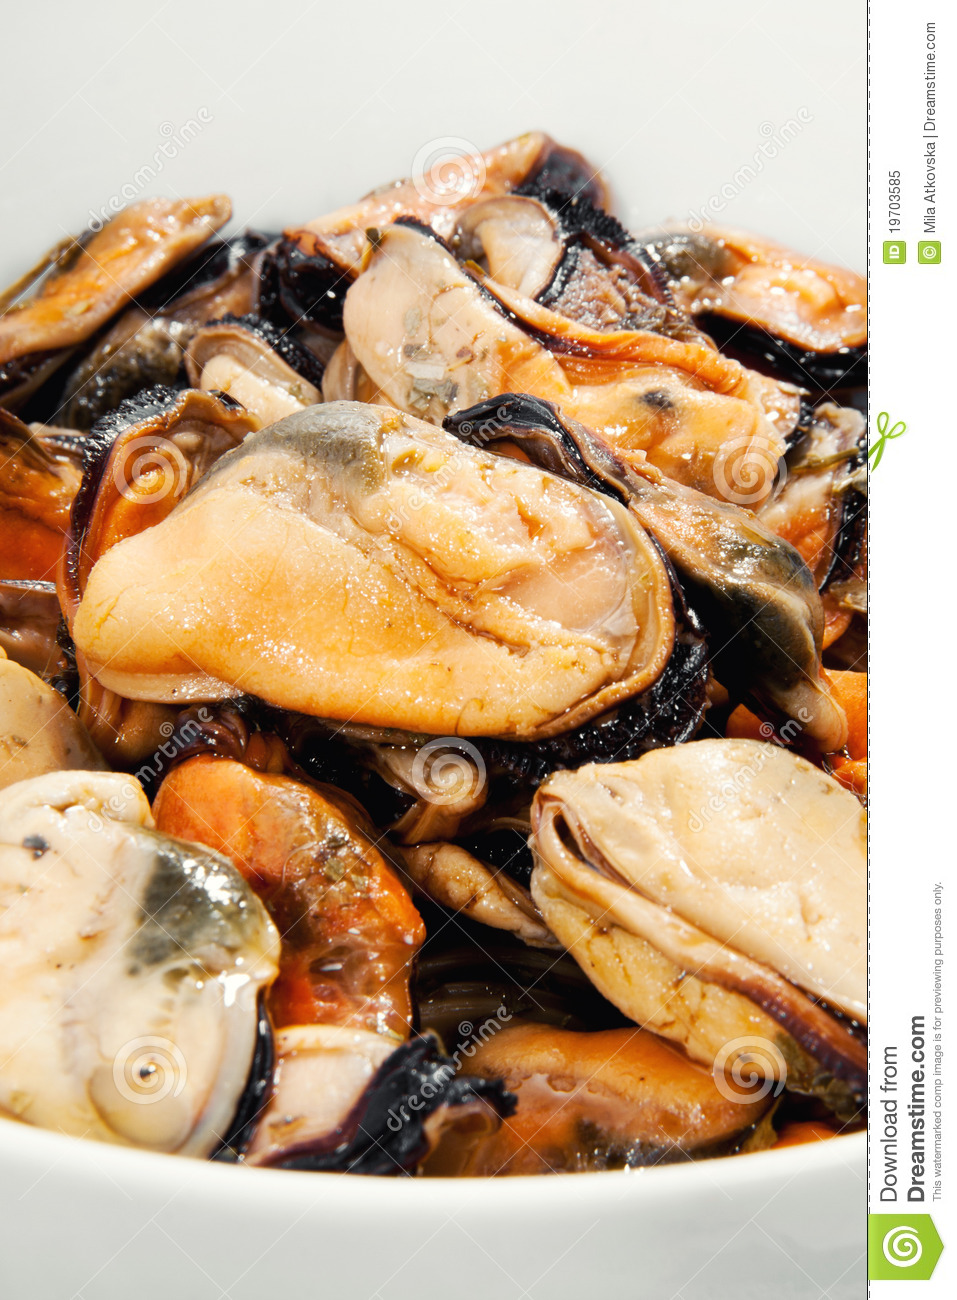 how to eat marinated mussels